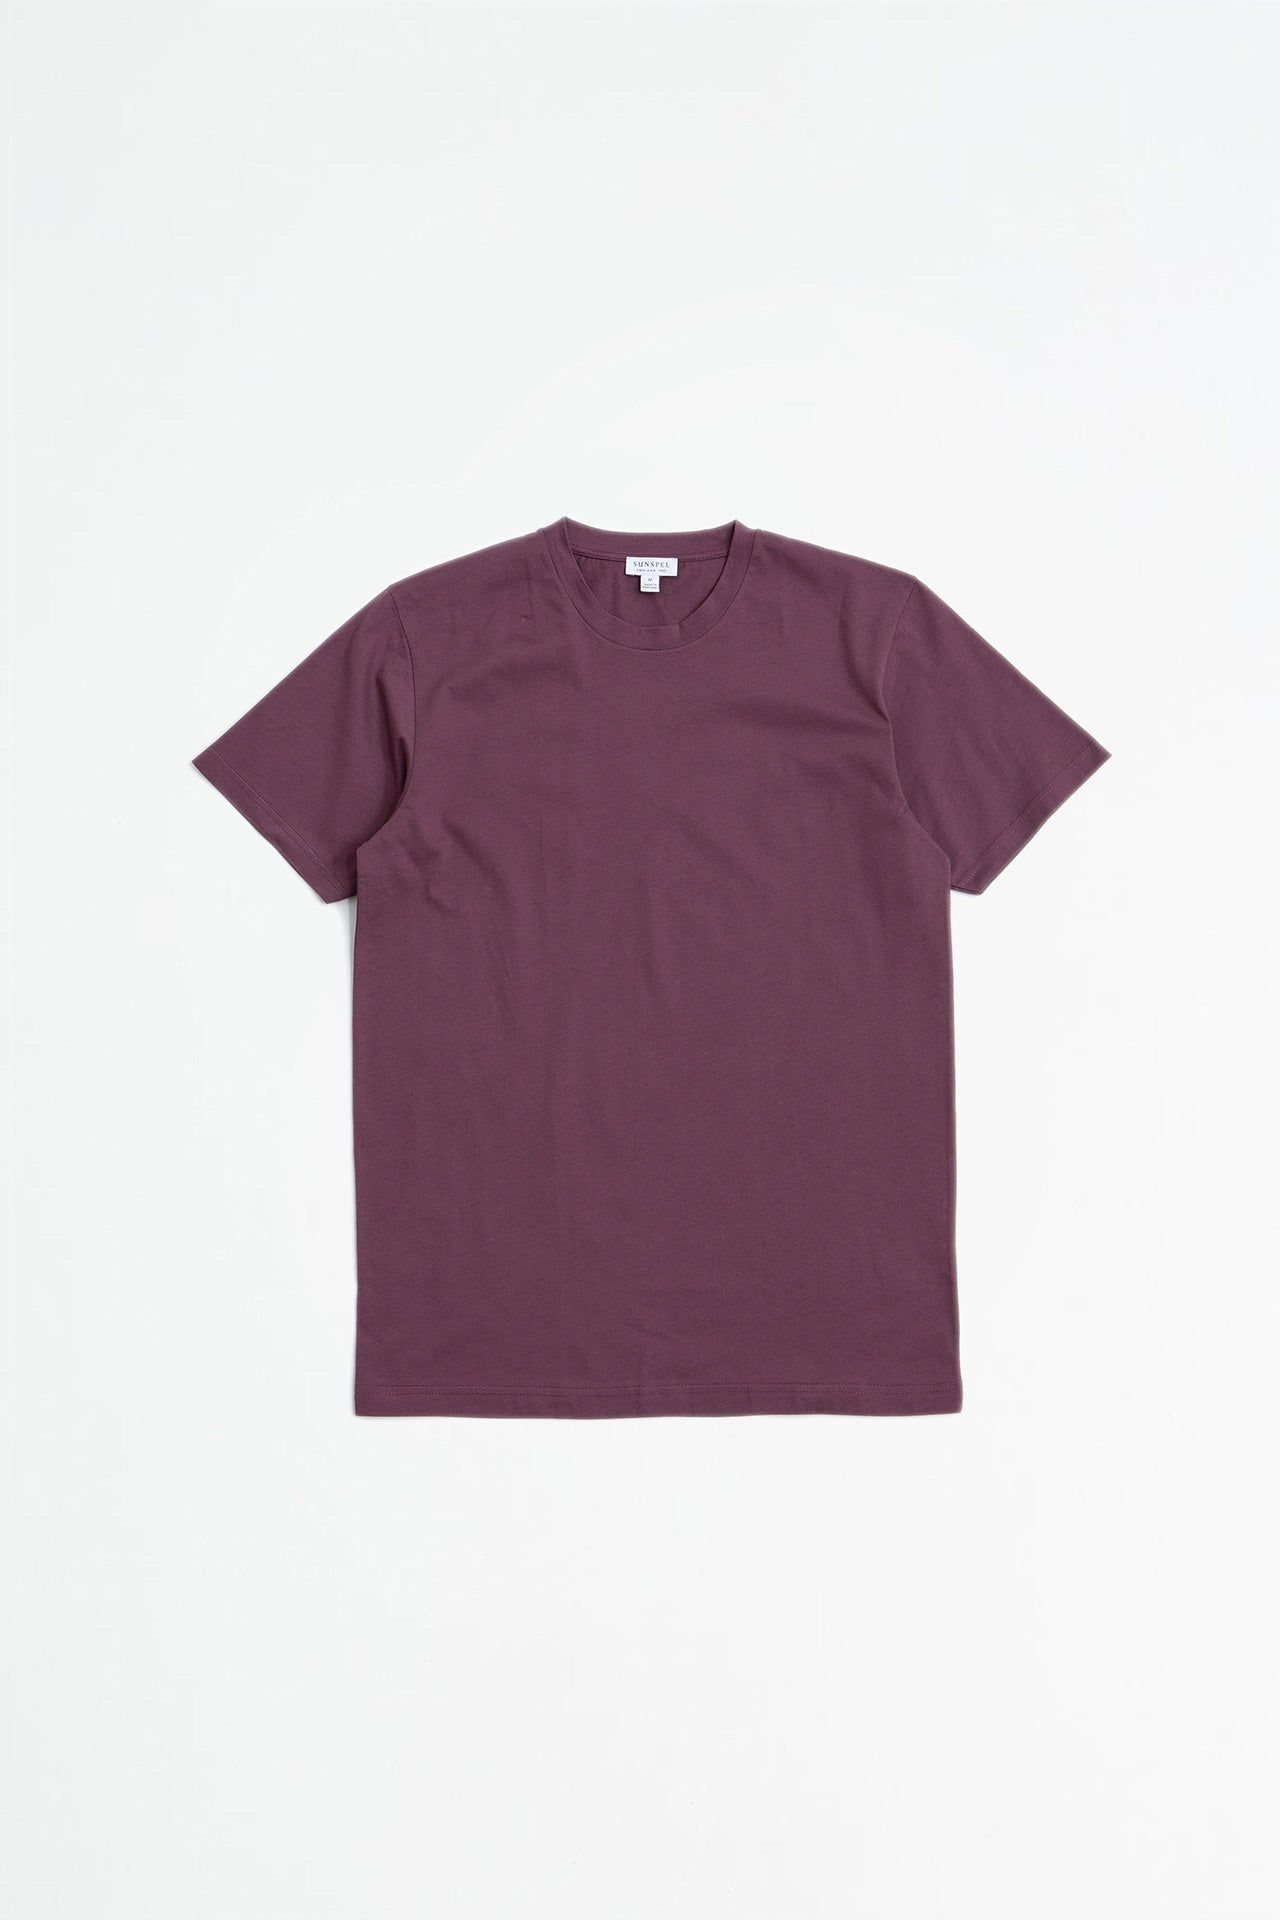 Riviera crew neck t-shirt burgundy